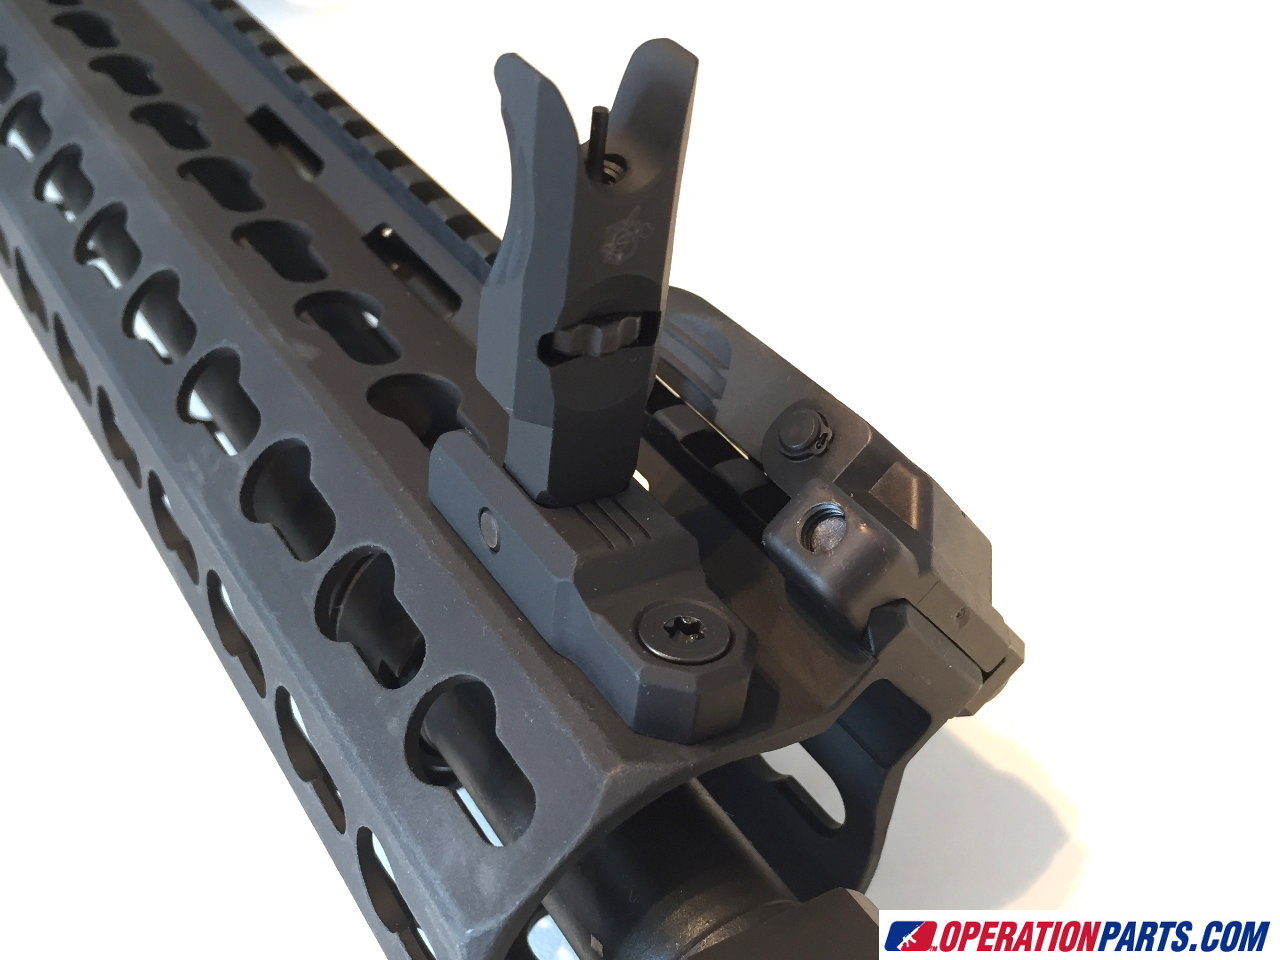 KAC-Knight's Armament KeyMod Sight Kit With 300M Rear Sight (30759)